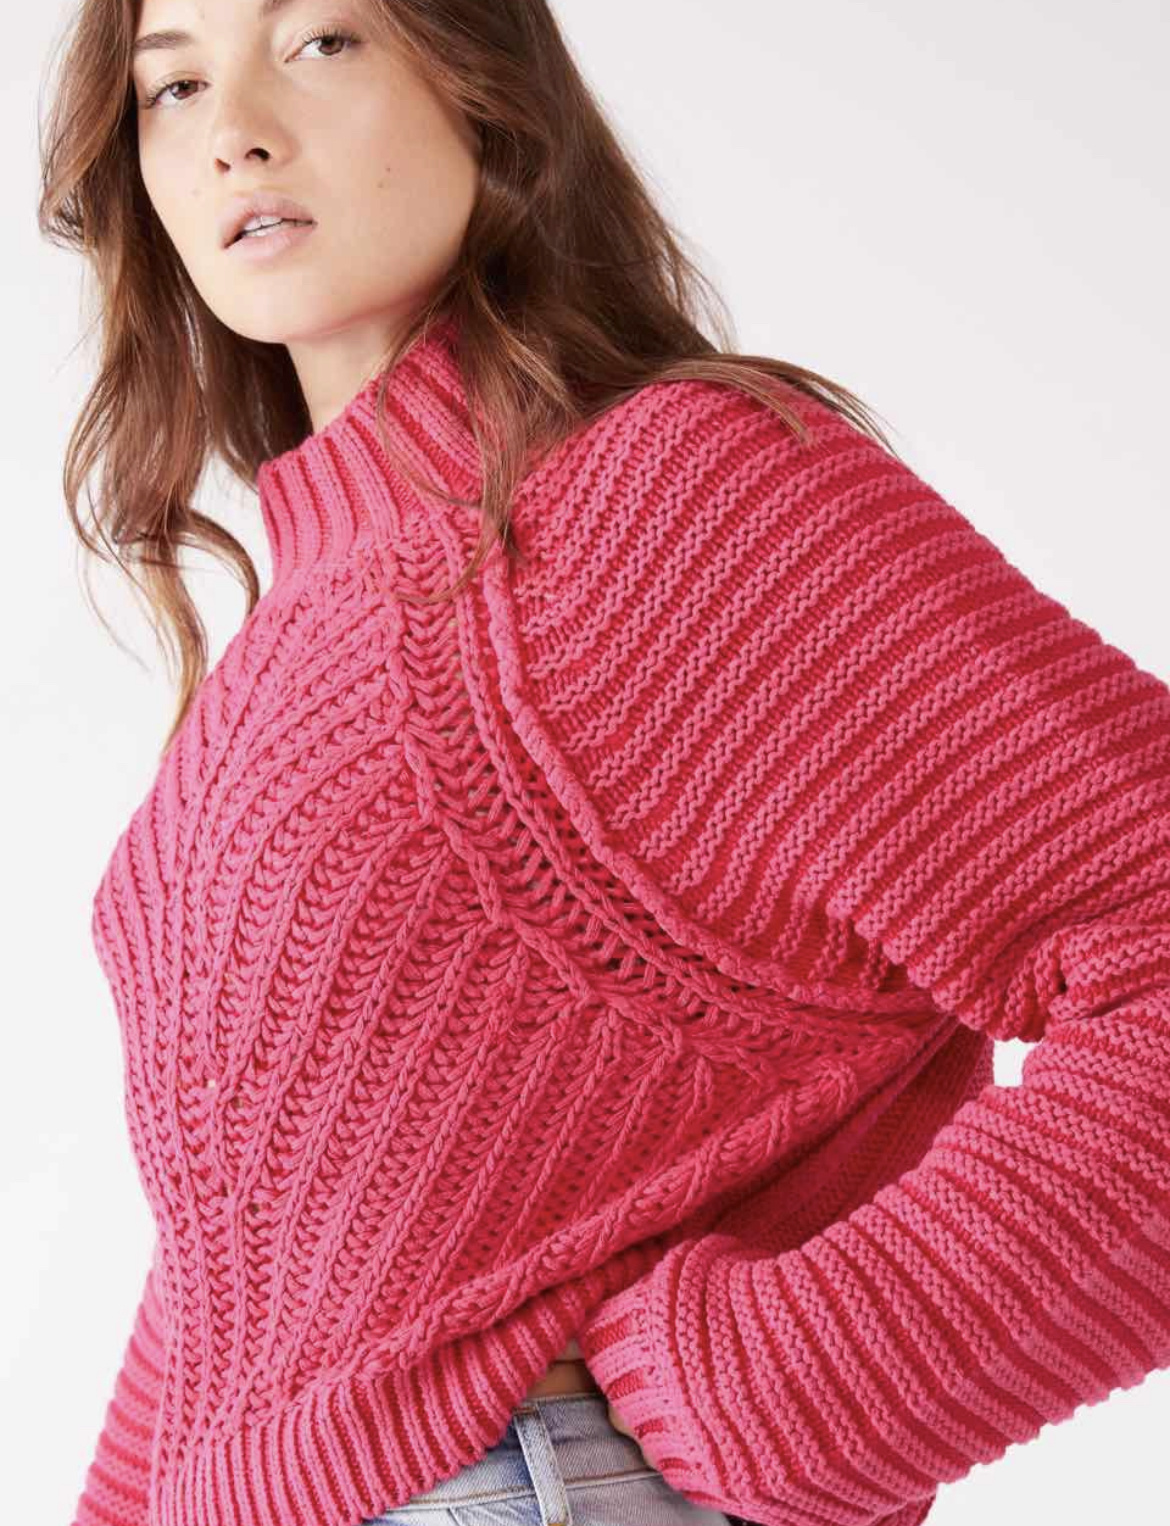 Free People Sweetheart Sweater - Candy Pink